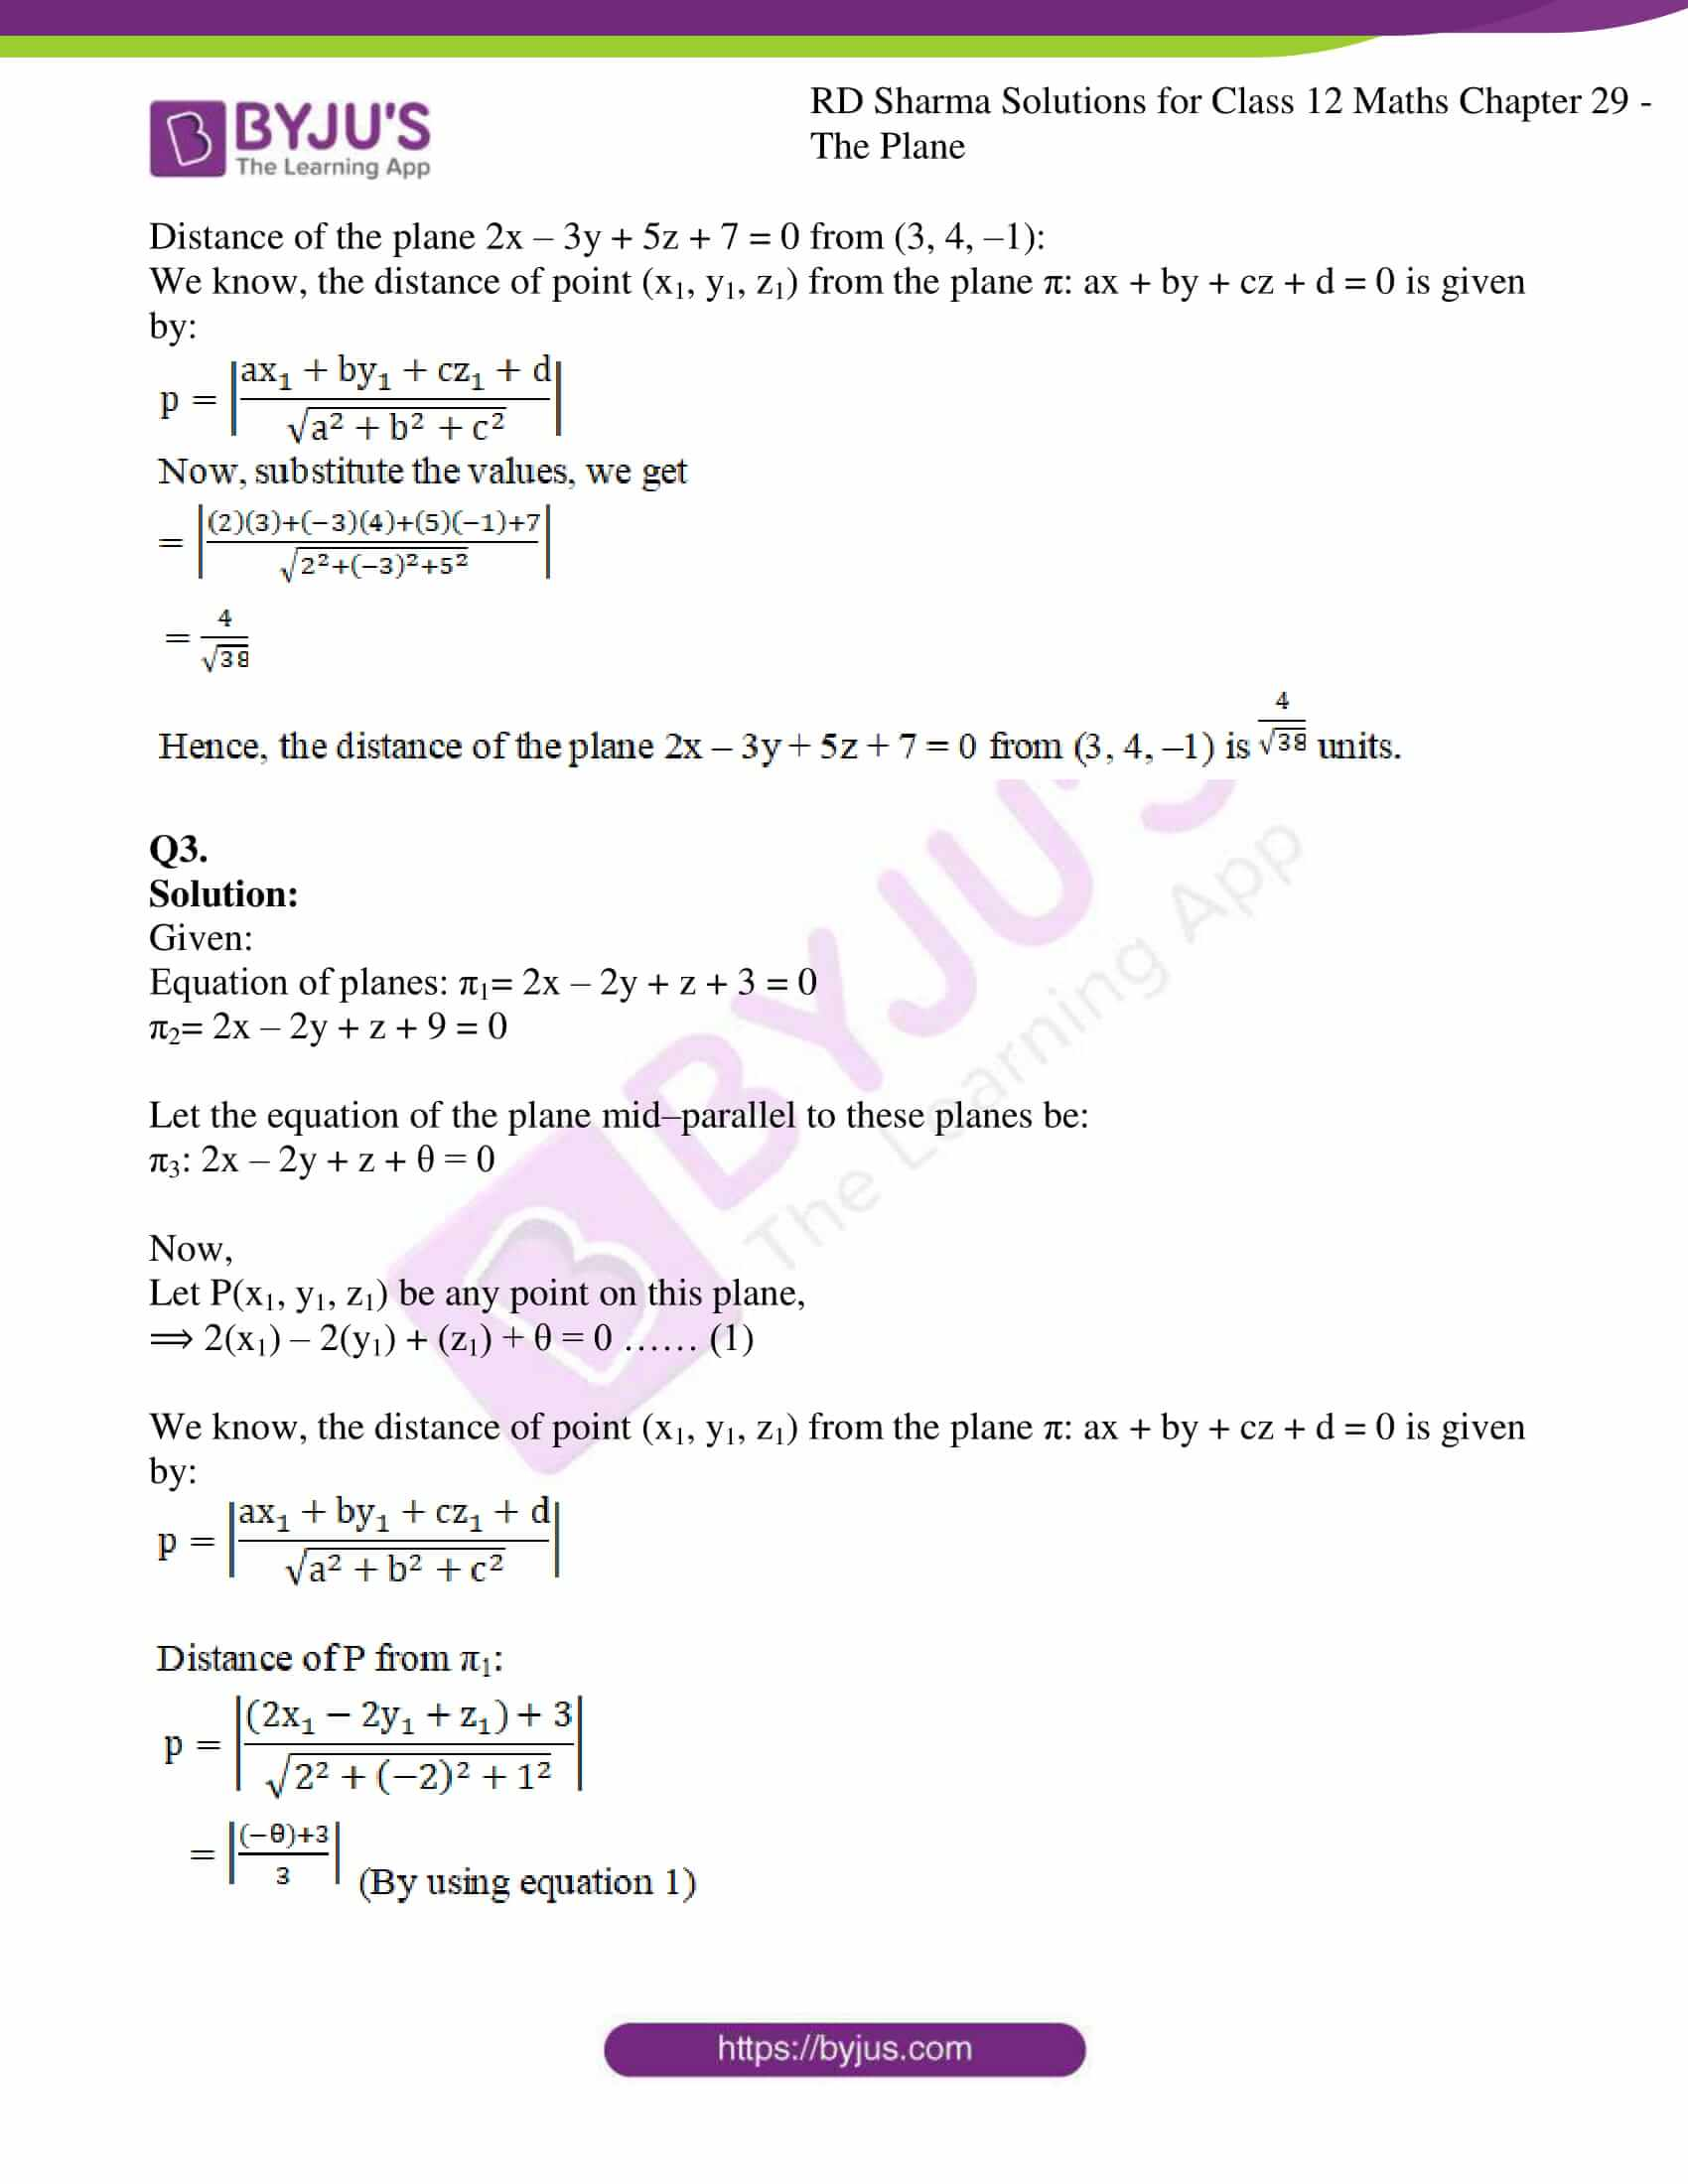 rd sharma solutions for class 12 maths chapter 29 ex 10 2